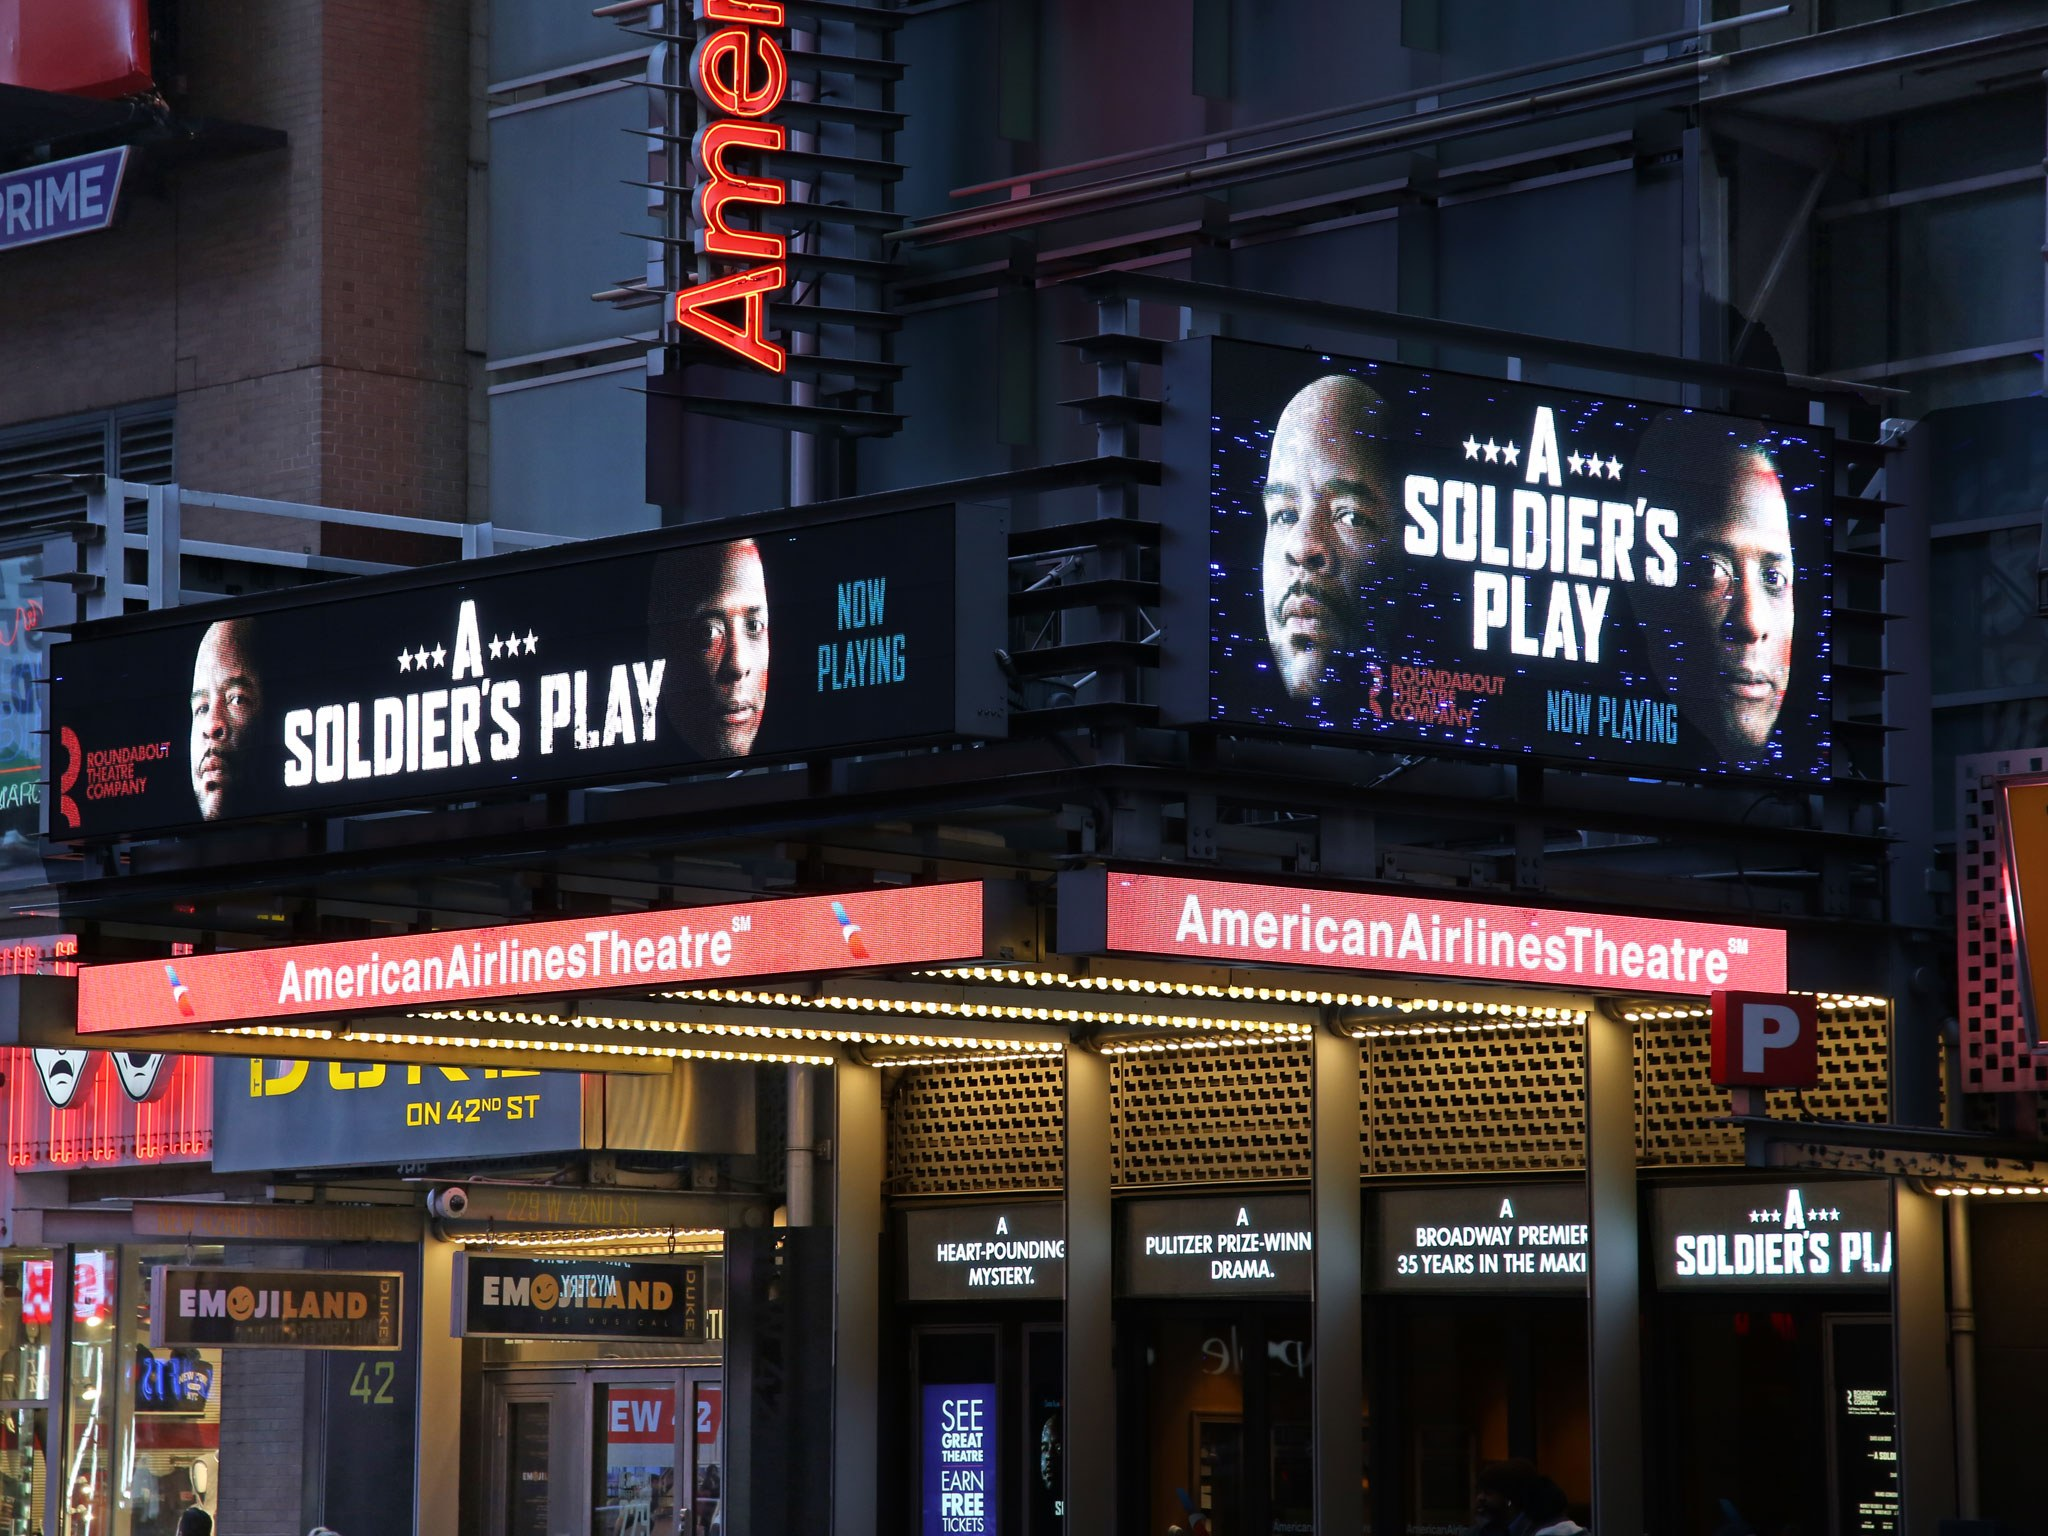 A Soldiers Play at the American Airlines Theatre